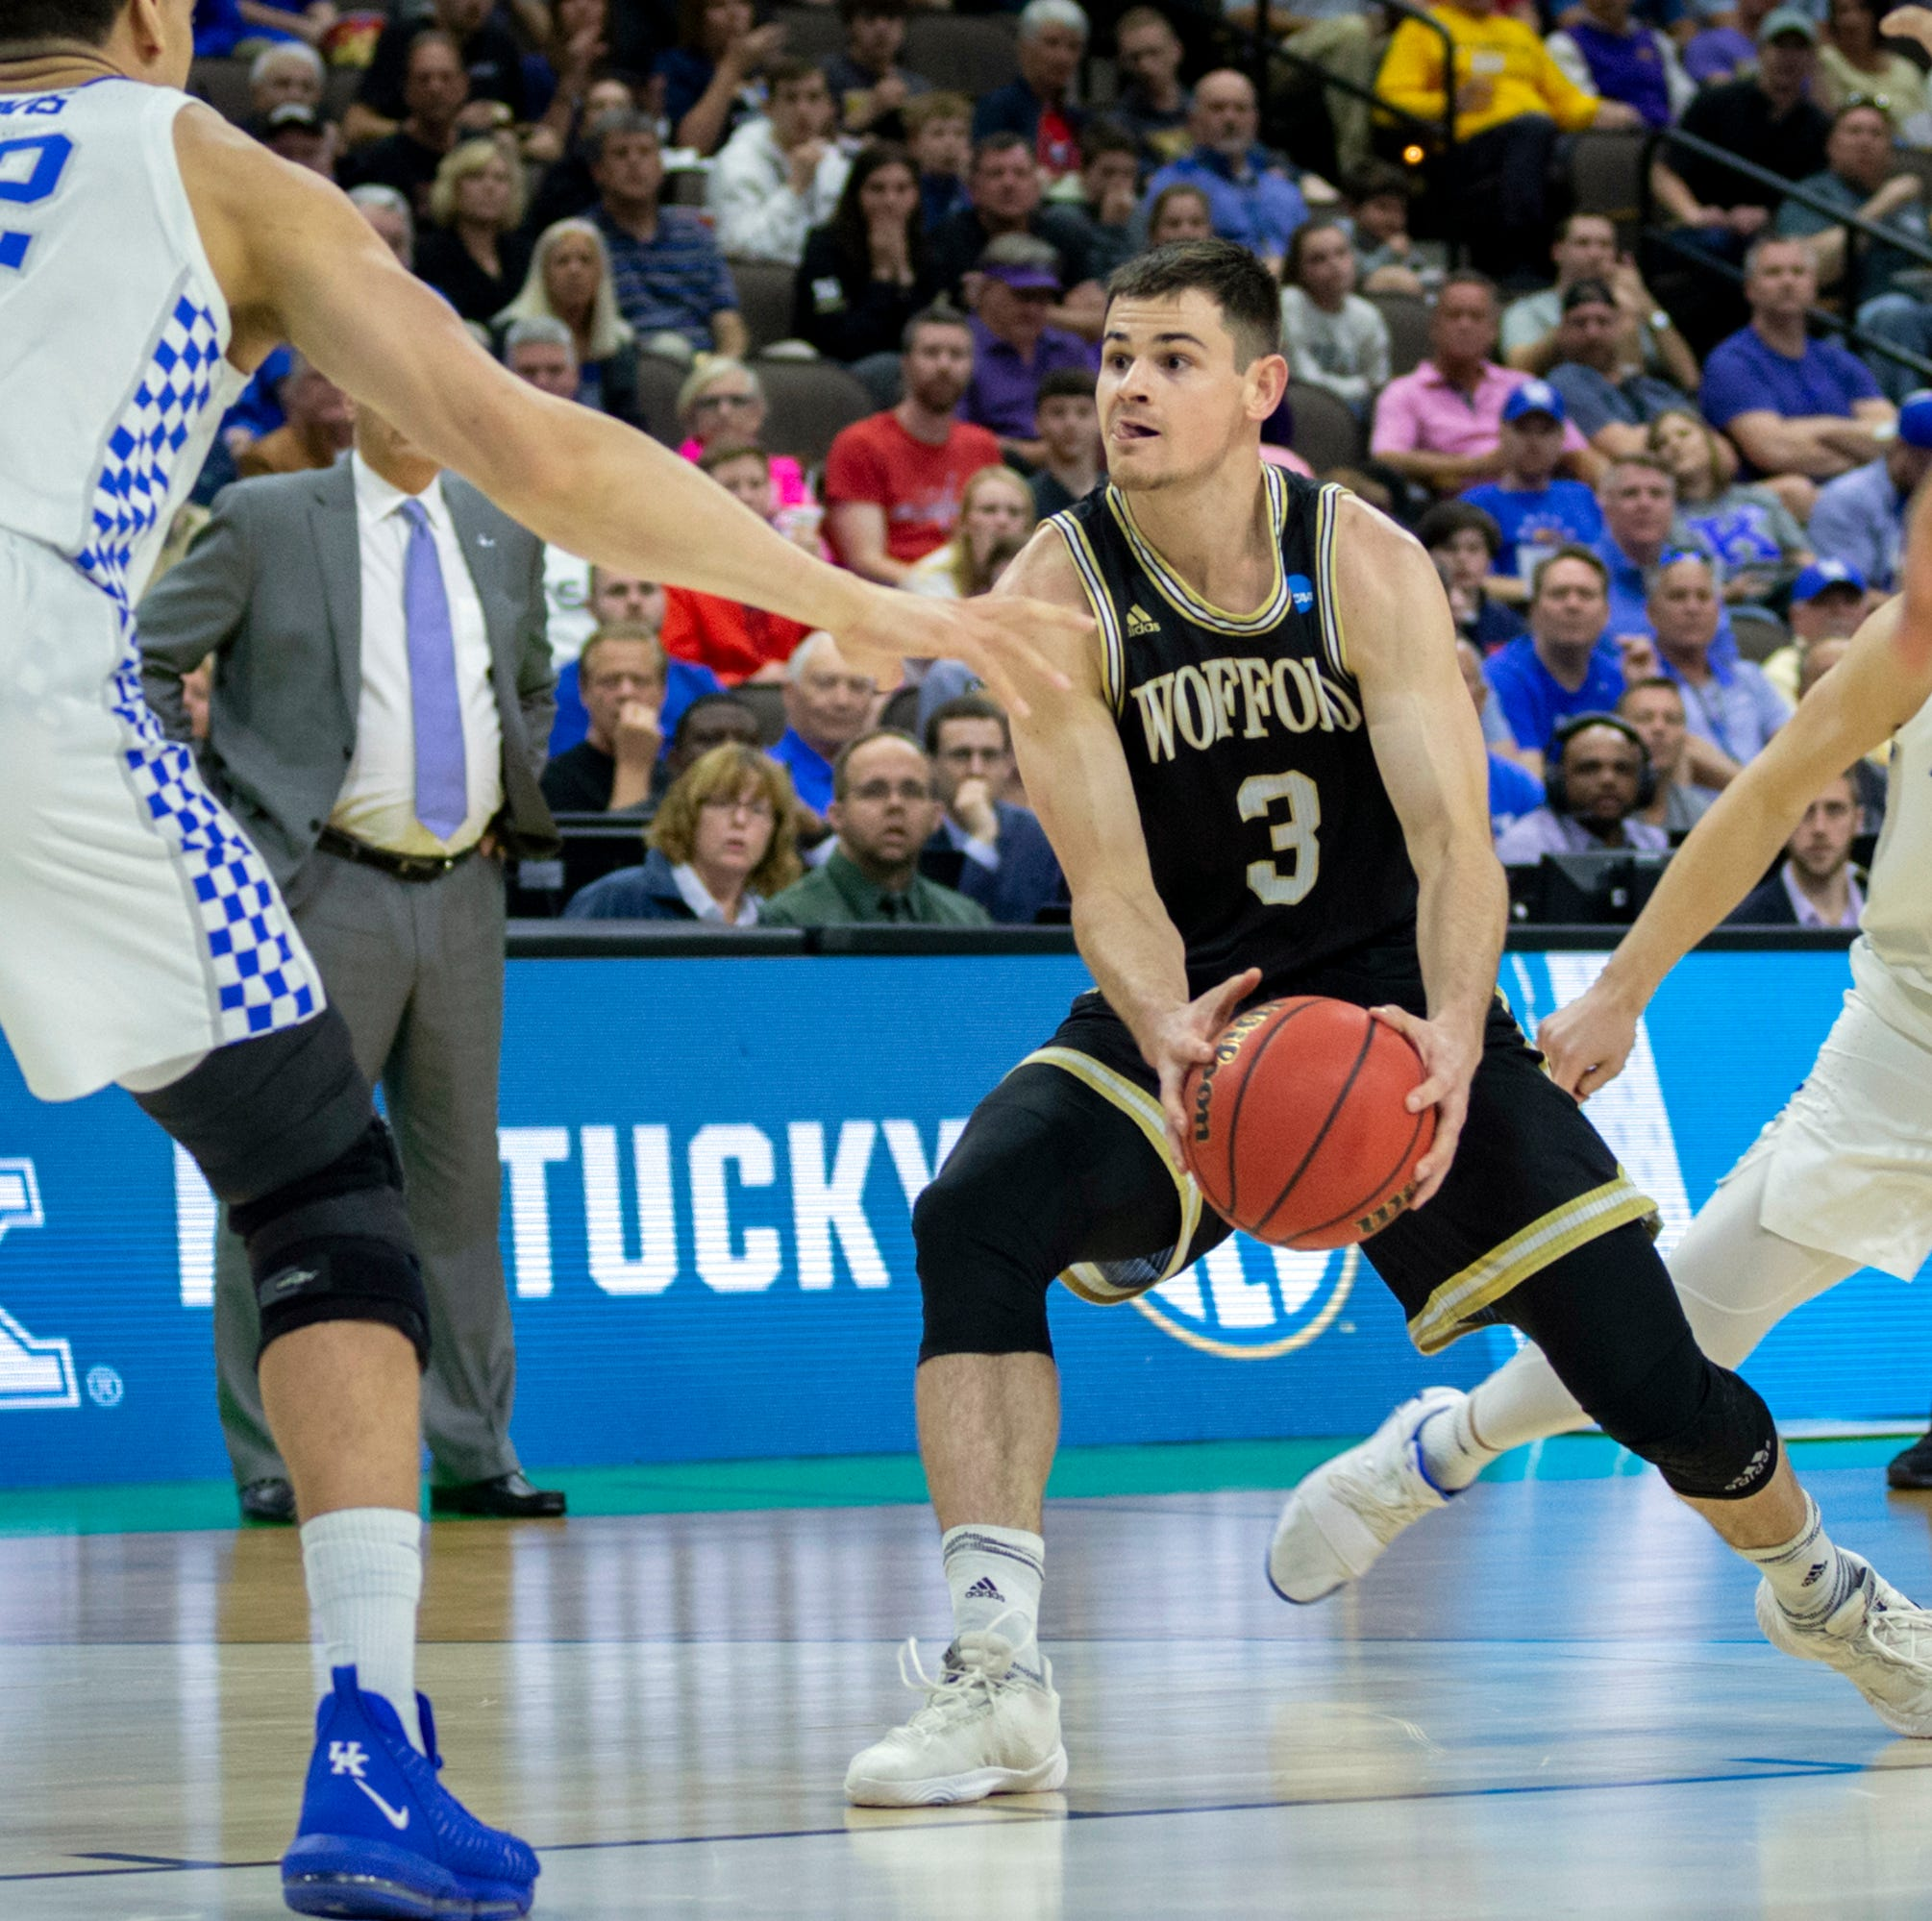 Wofford basketball: Fletcher Magee's NCAA Tournament performance should be emulated